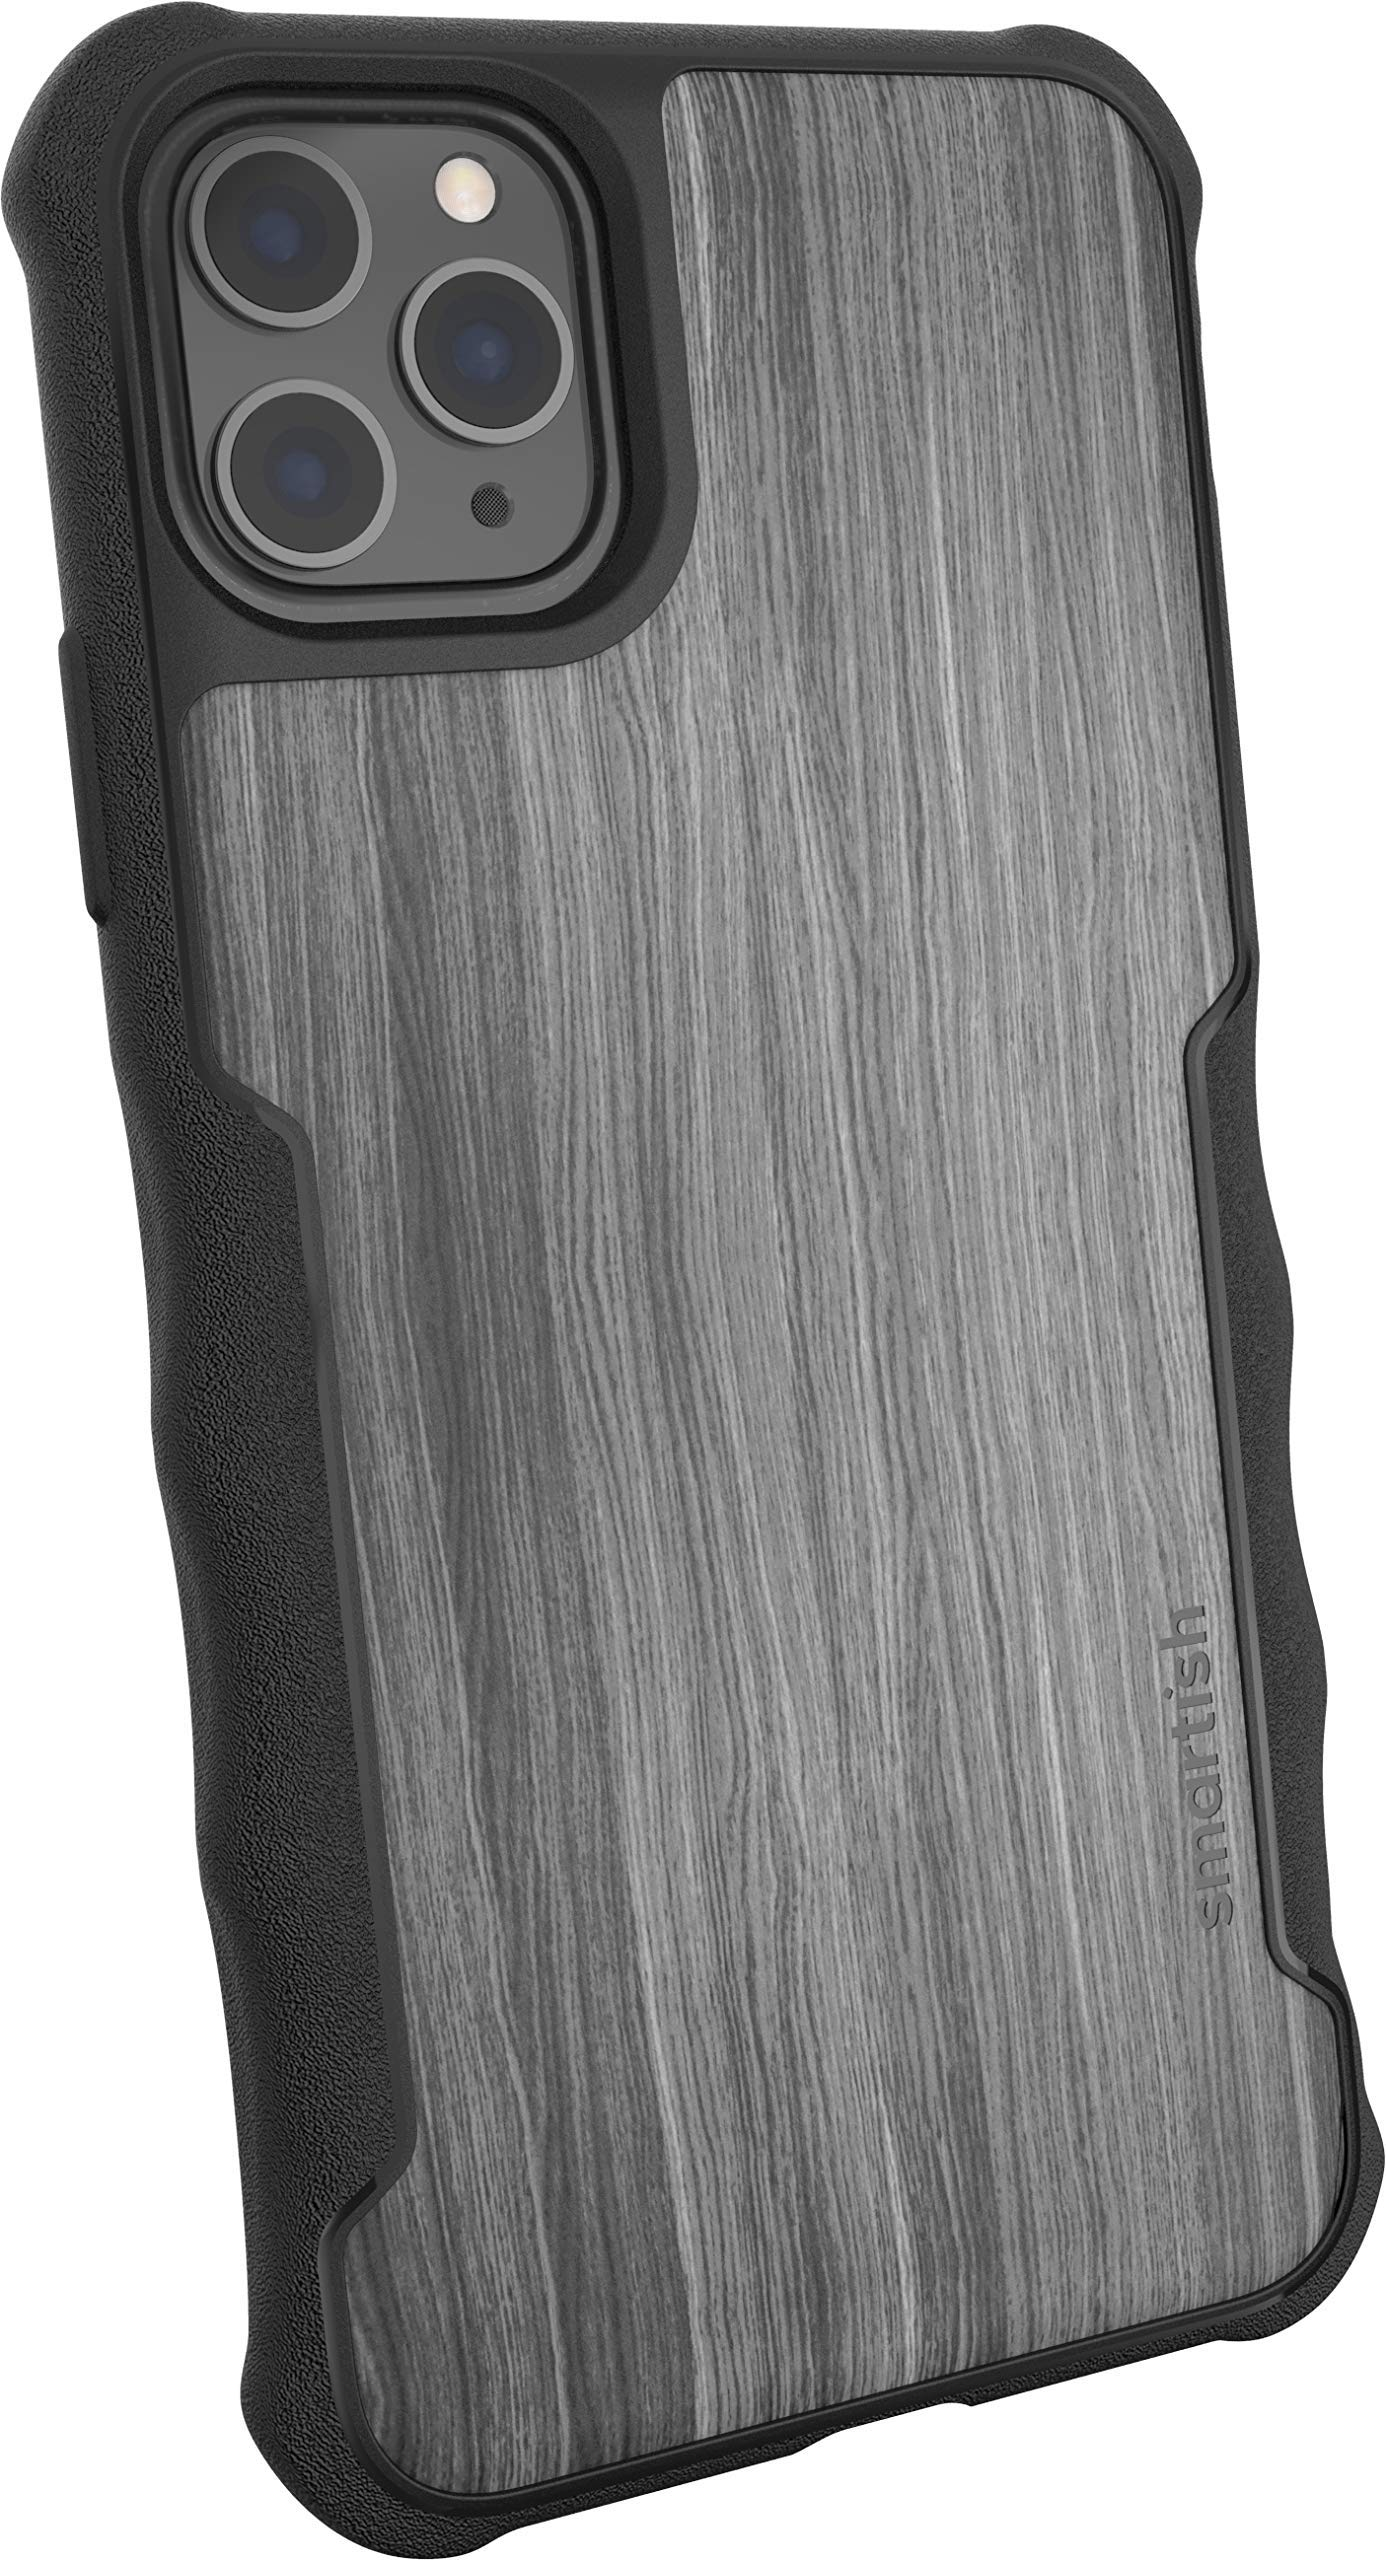 Smartish iPhone 11 Pro Max Armor Case - Gripzilla [Rugged + Protective] Slim Tough Grip Cover - [Flavor of The Month]